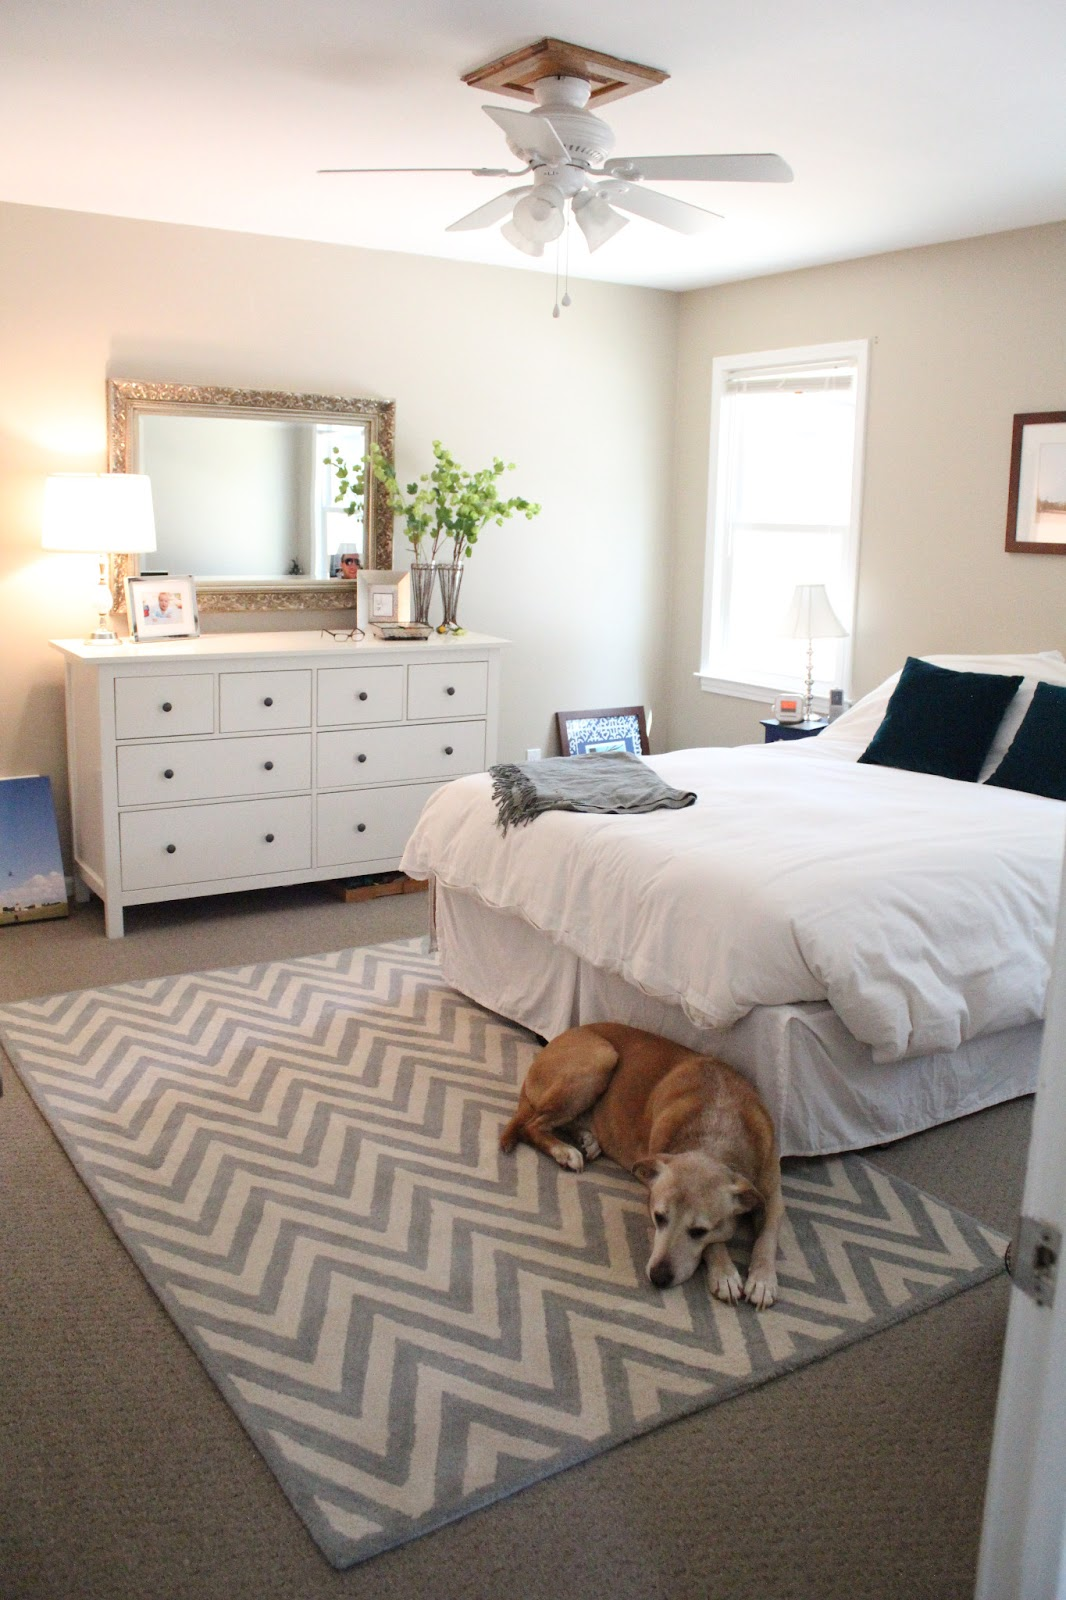 Ten june our rental house a master bedroom tour for Bedroom ideas for renters